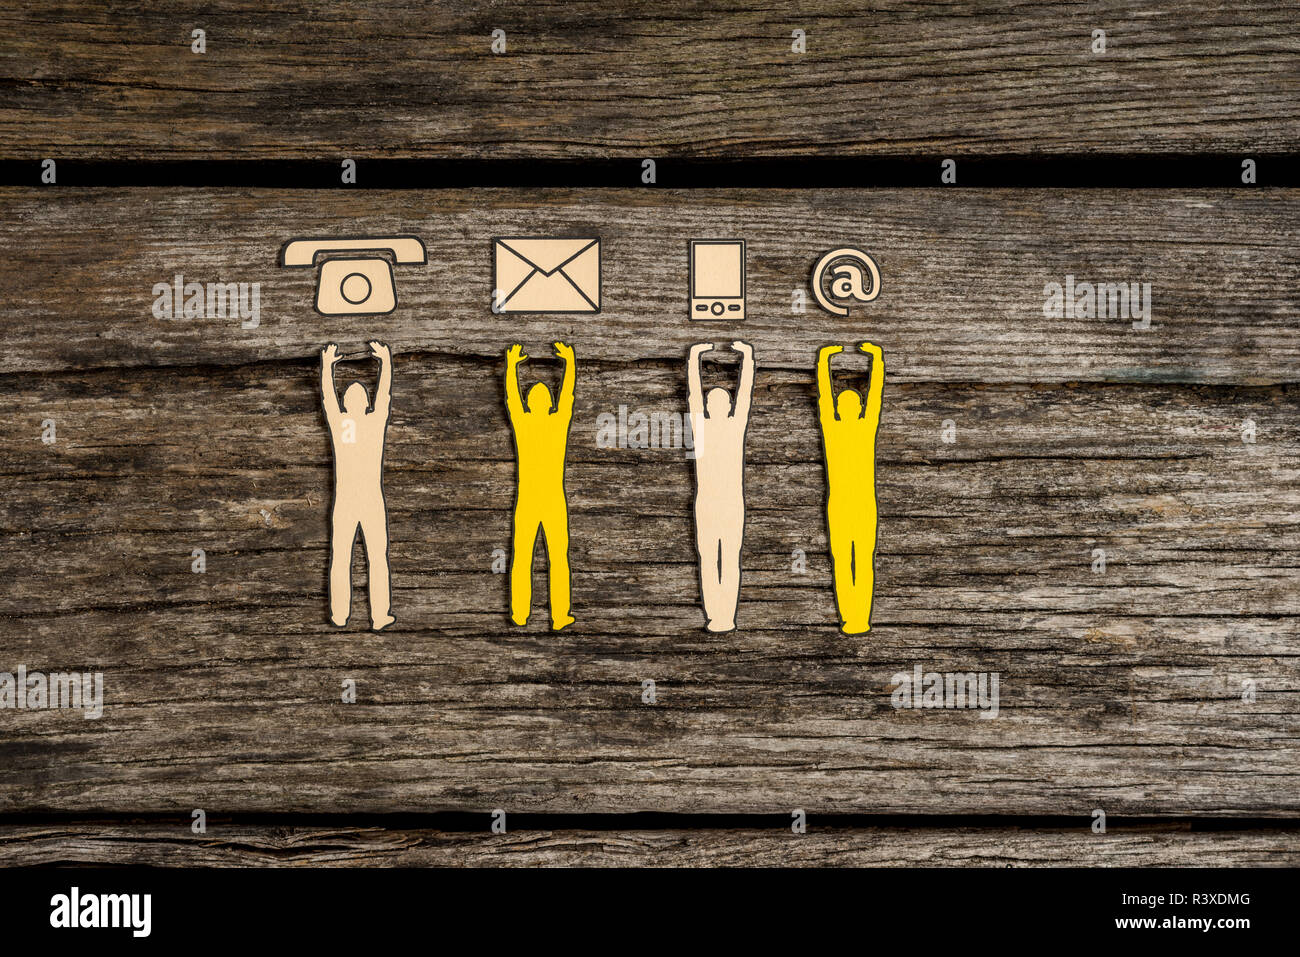 Teamwork and customer service concept with cut outs of four men supporting a line of phone, web and mail icons from below over a rustic background. - Stock Image